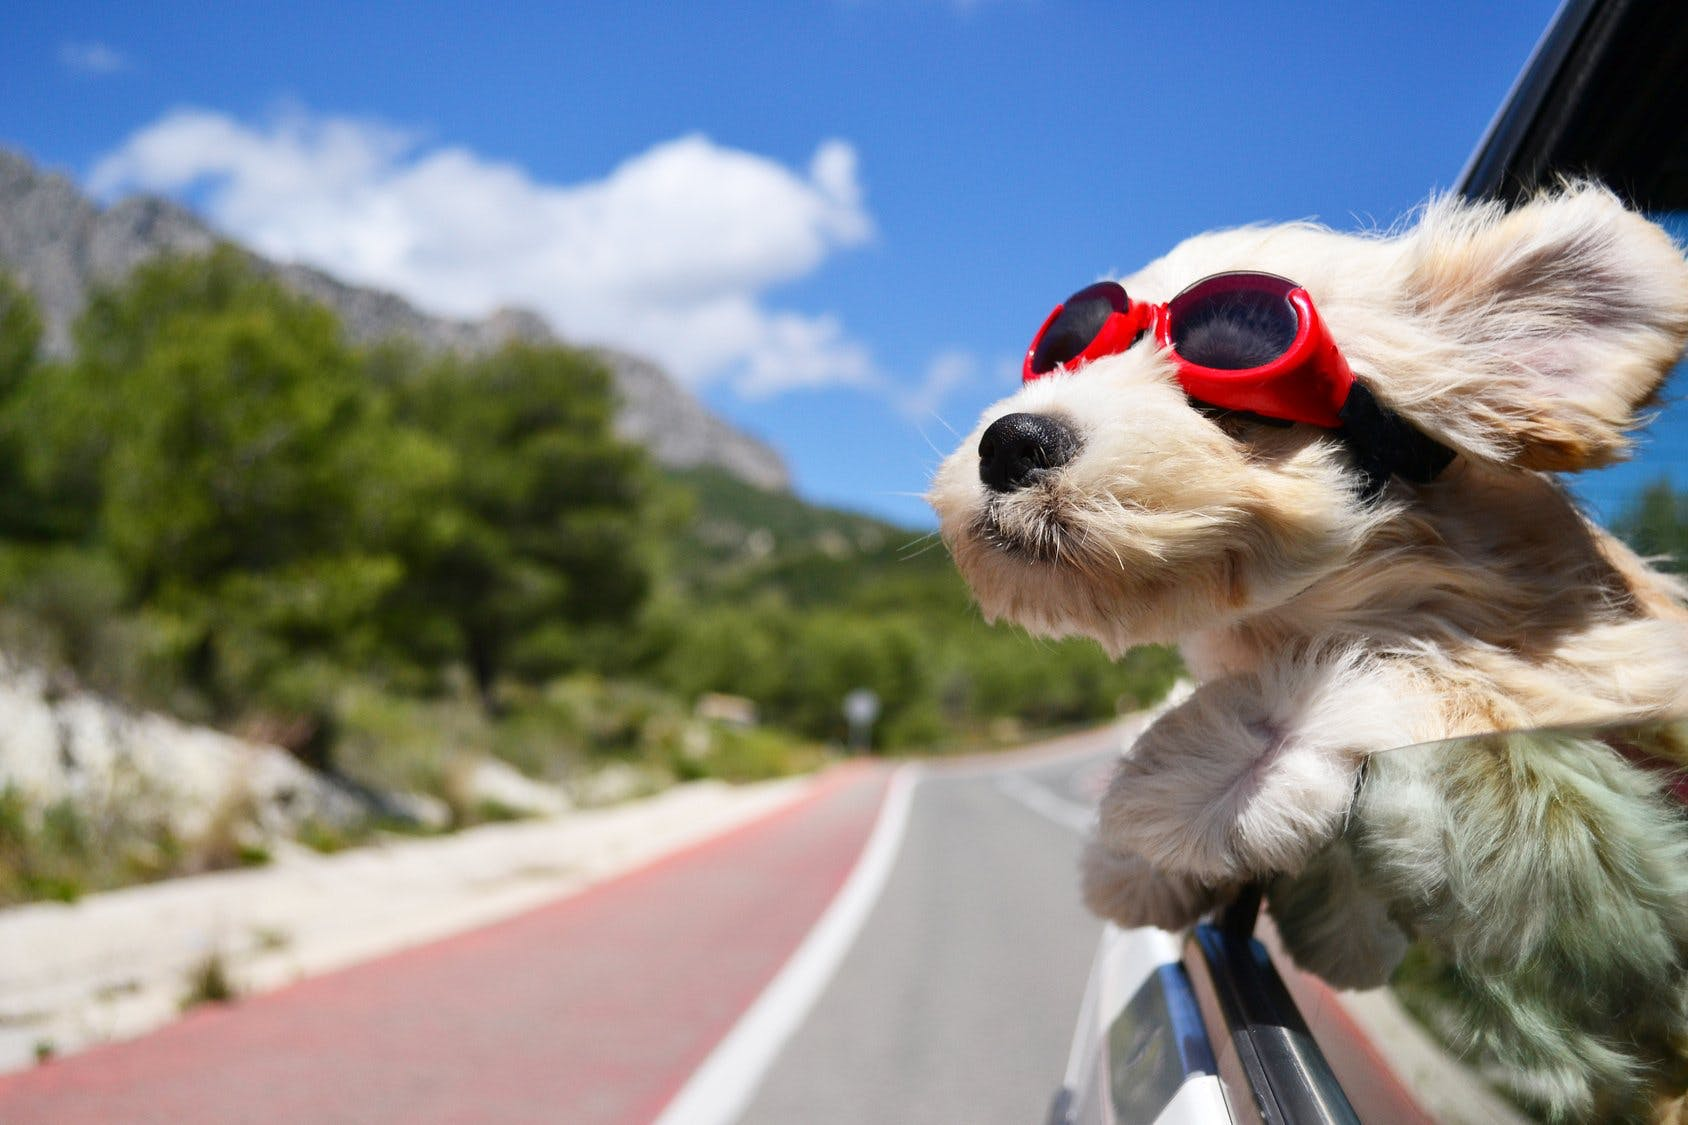 Traveling by car with your pet